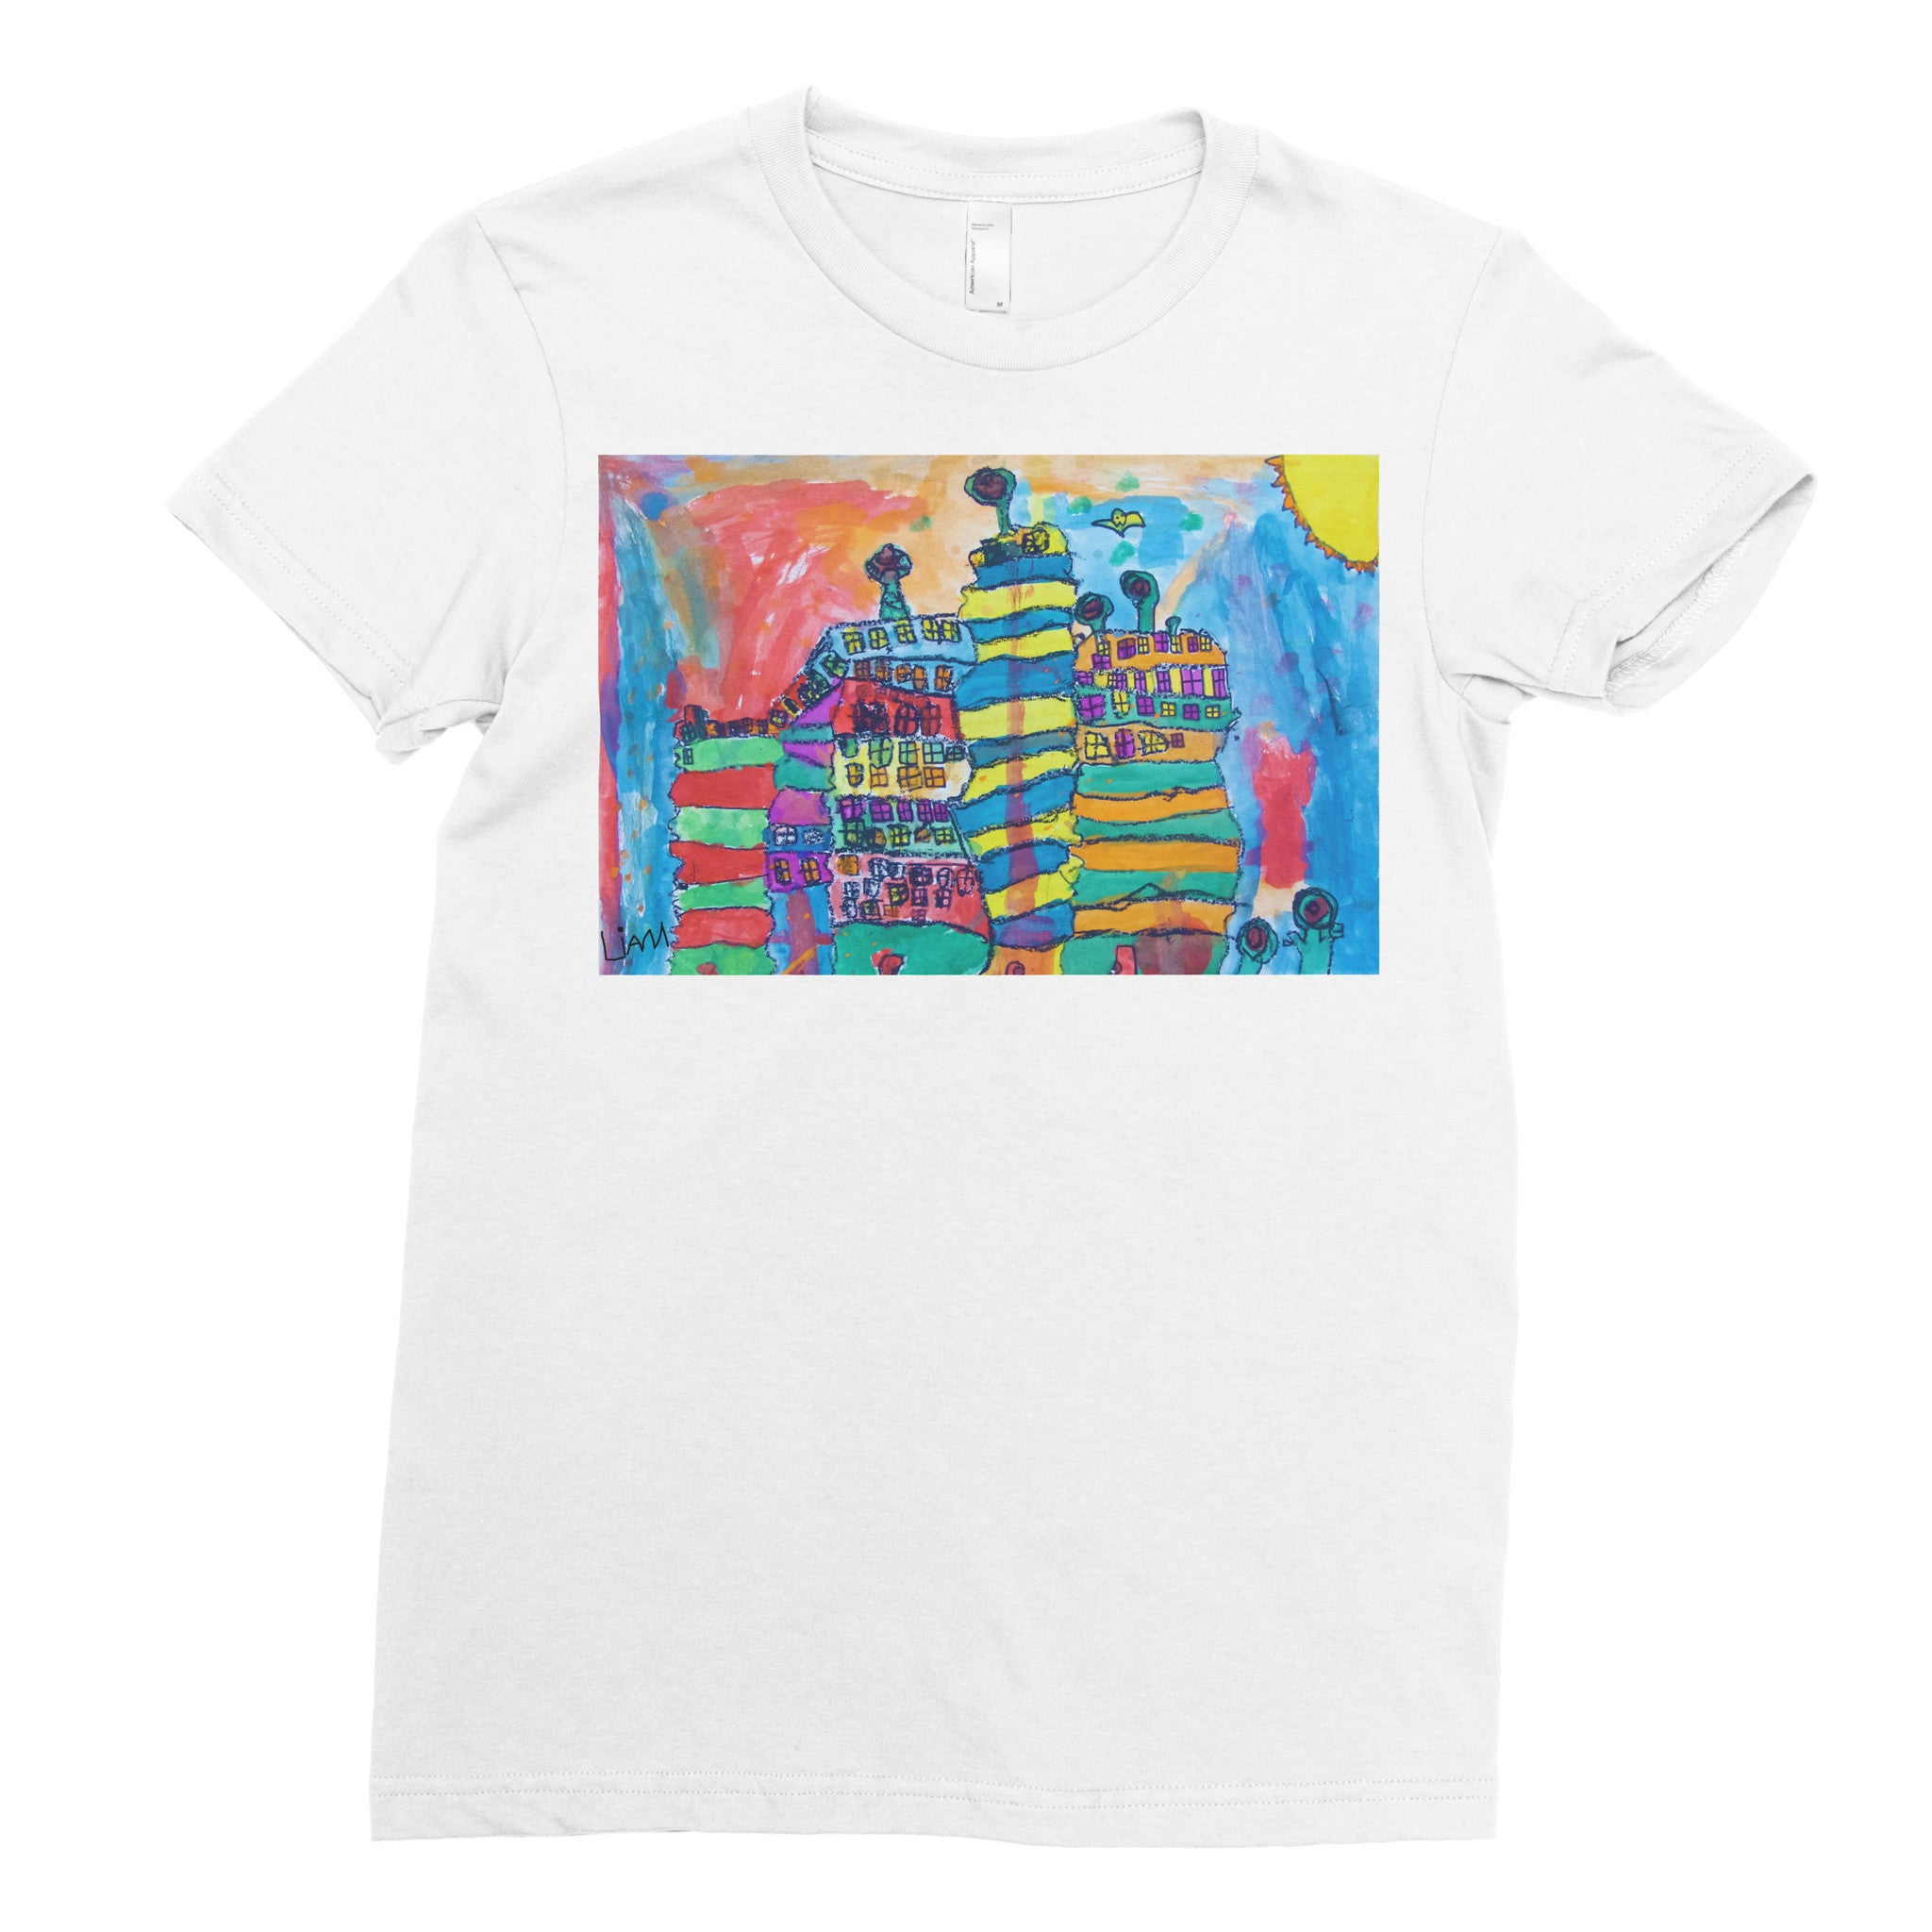 Liam, K2 - Adult T-shirt - Rightside Shirts